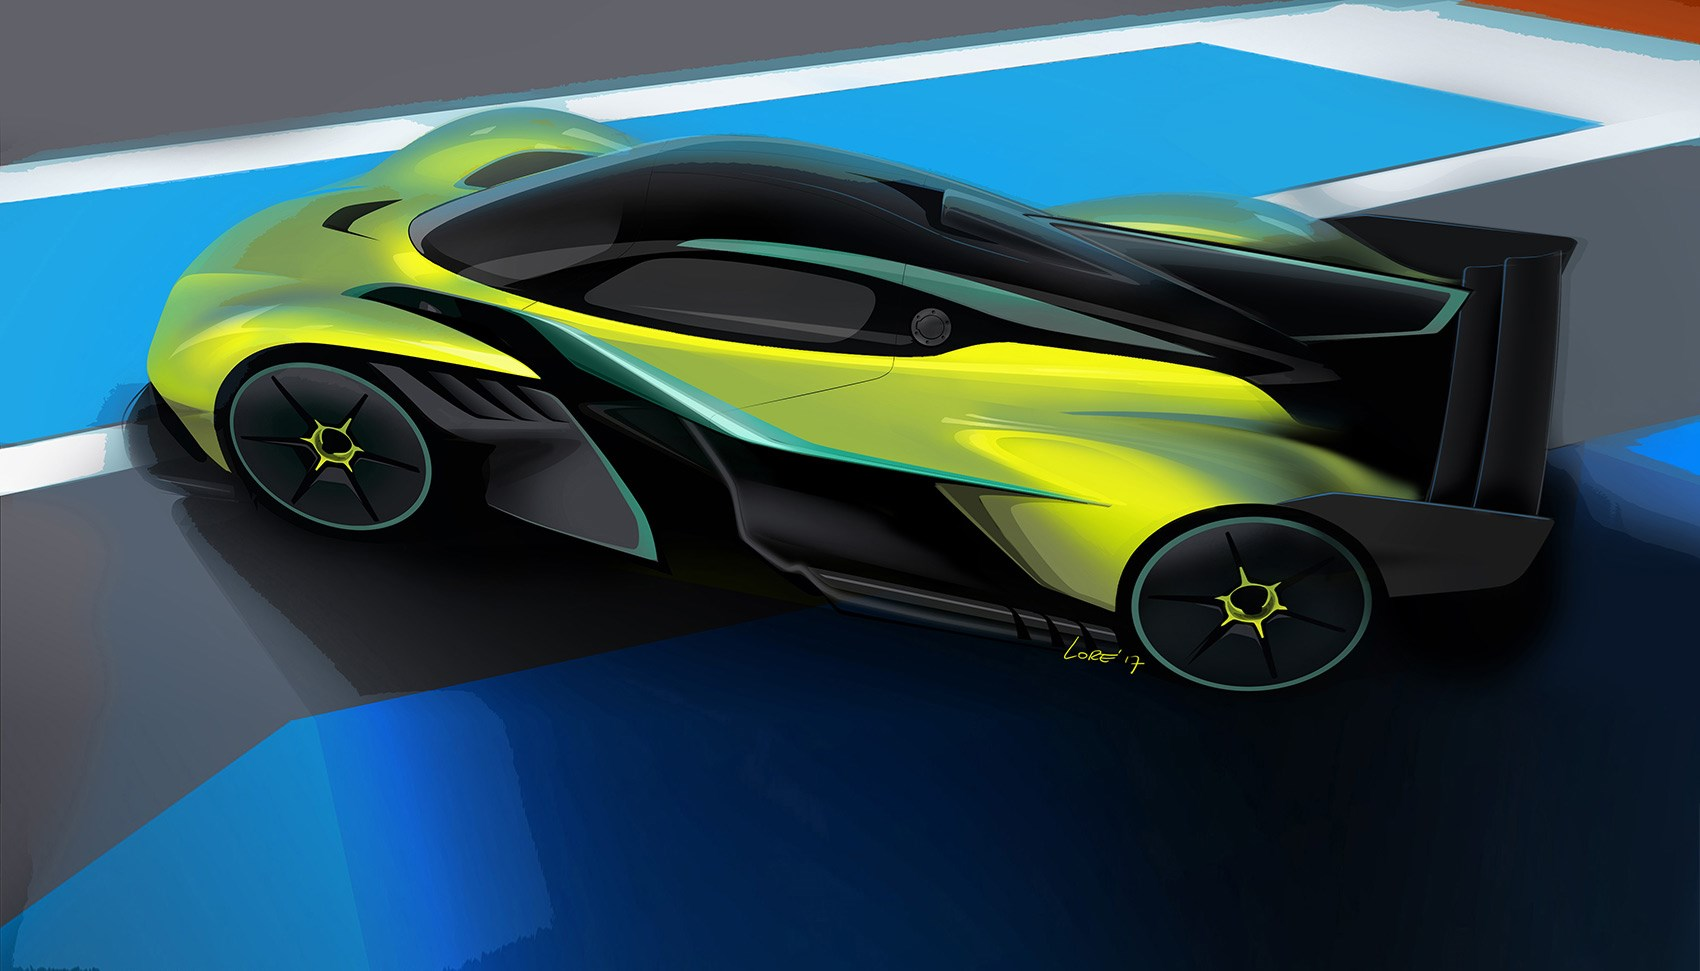 Aston Martin Valkyrie AMR Pro: 25 planned, all sold